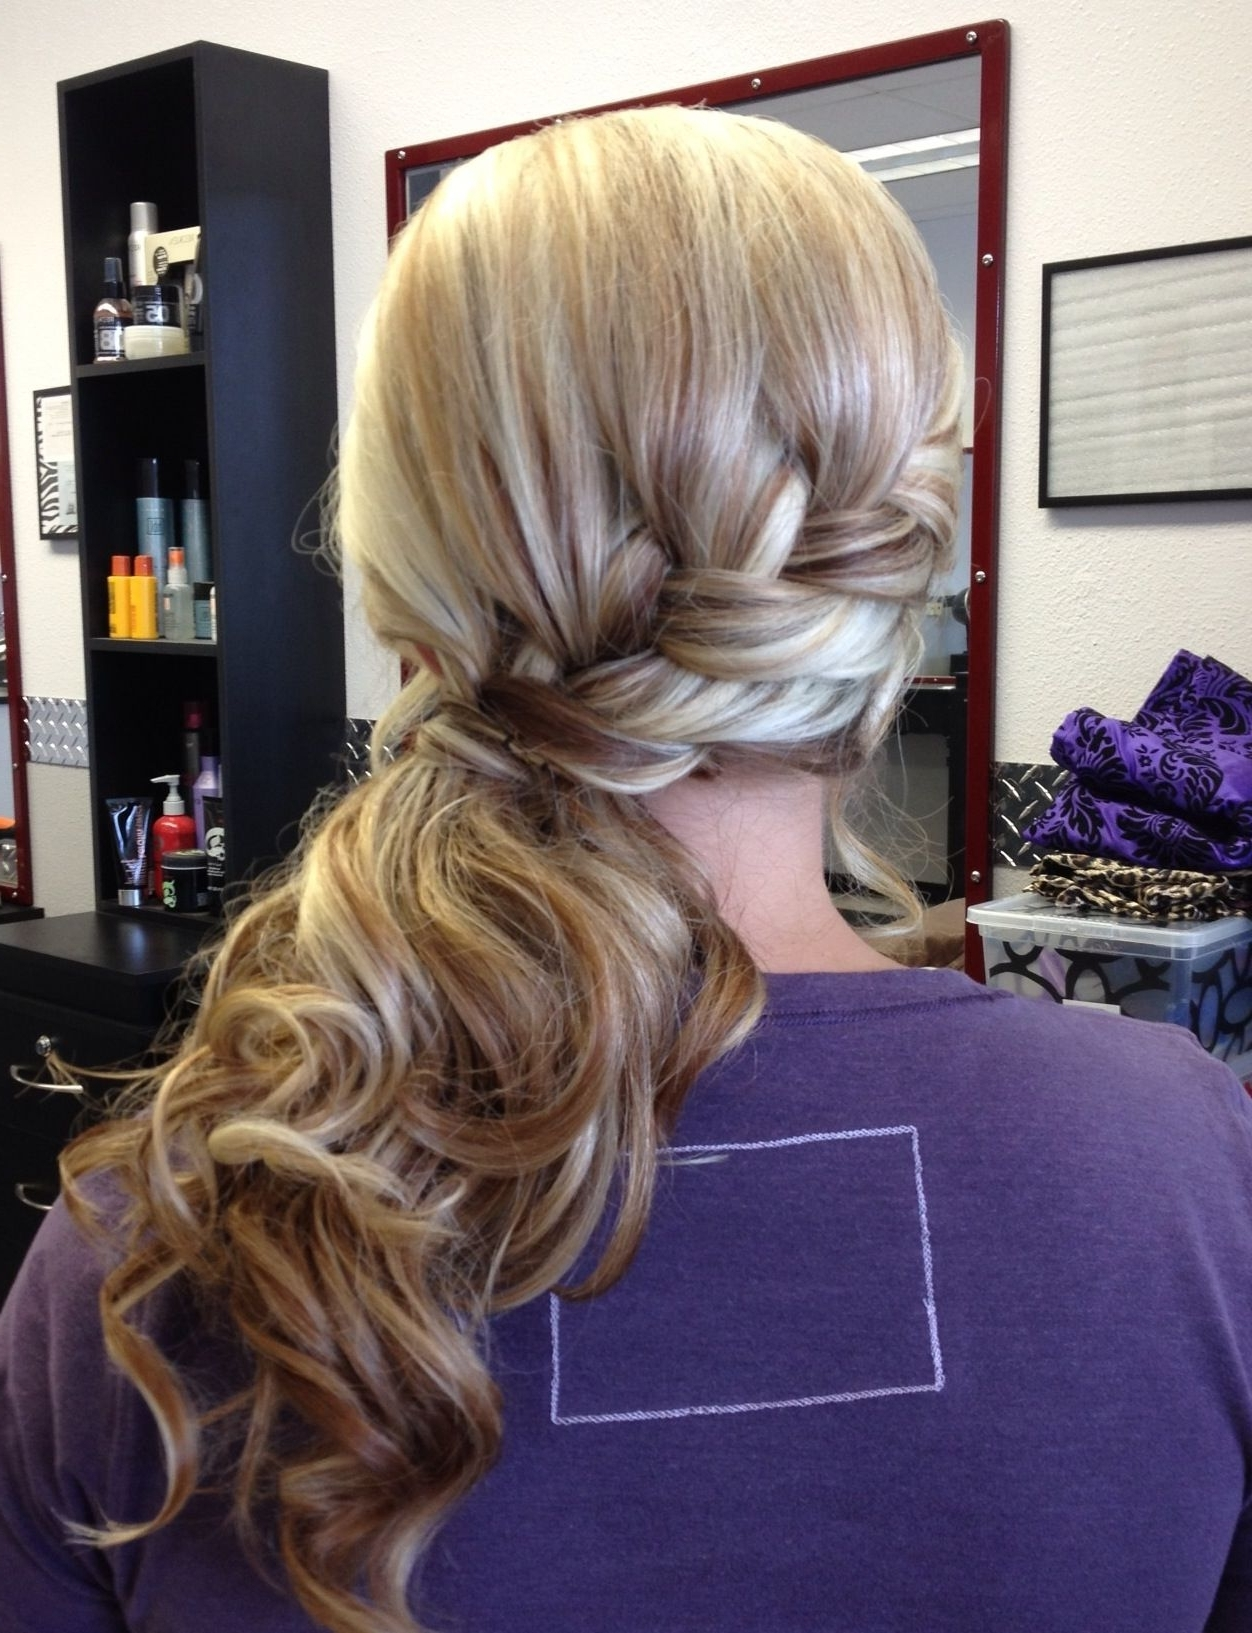 This Is The First Braided Style Ive Liked At All (View 16 of 20)